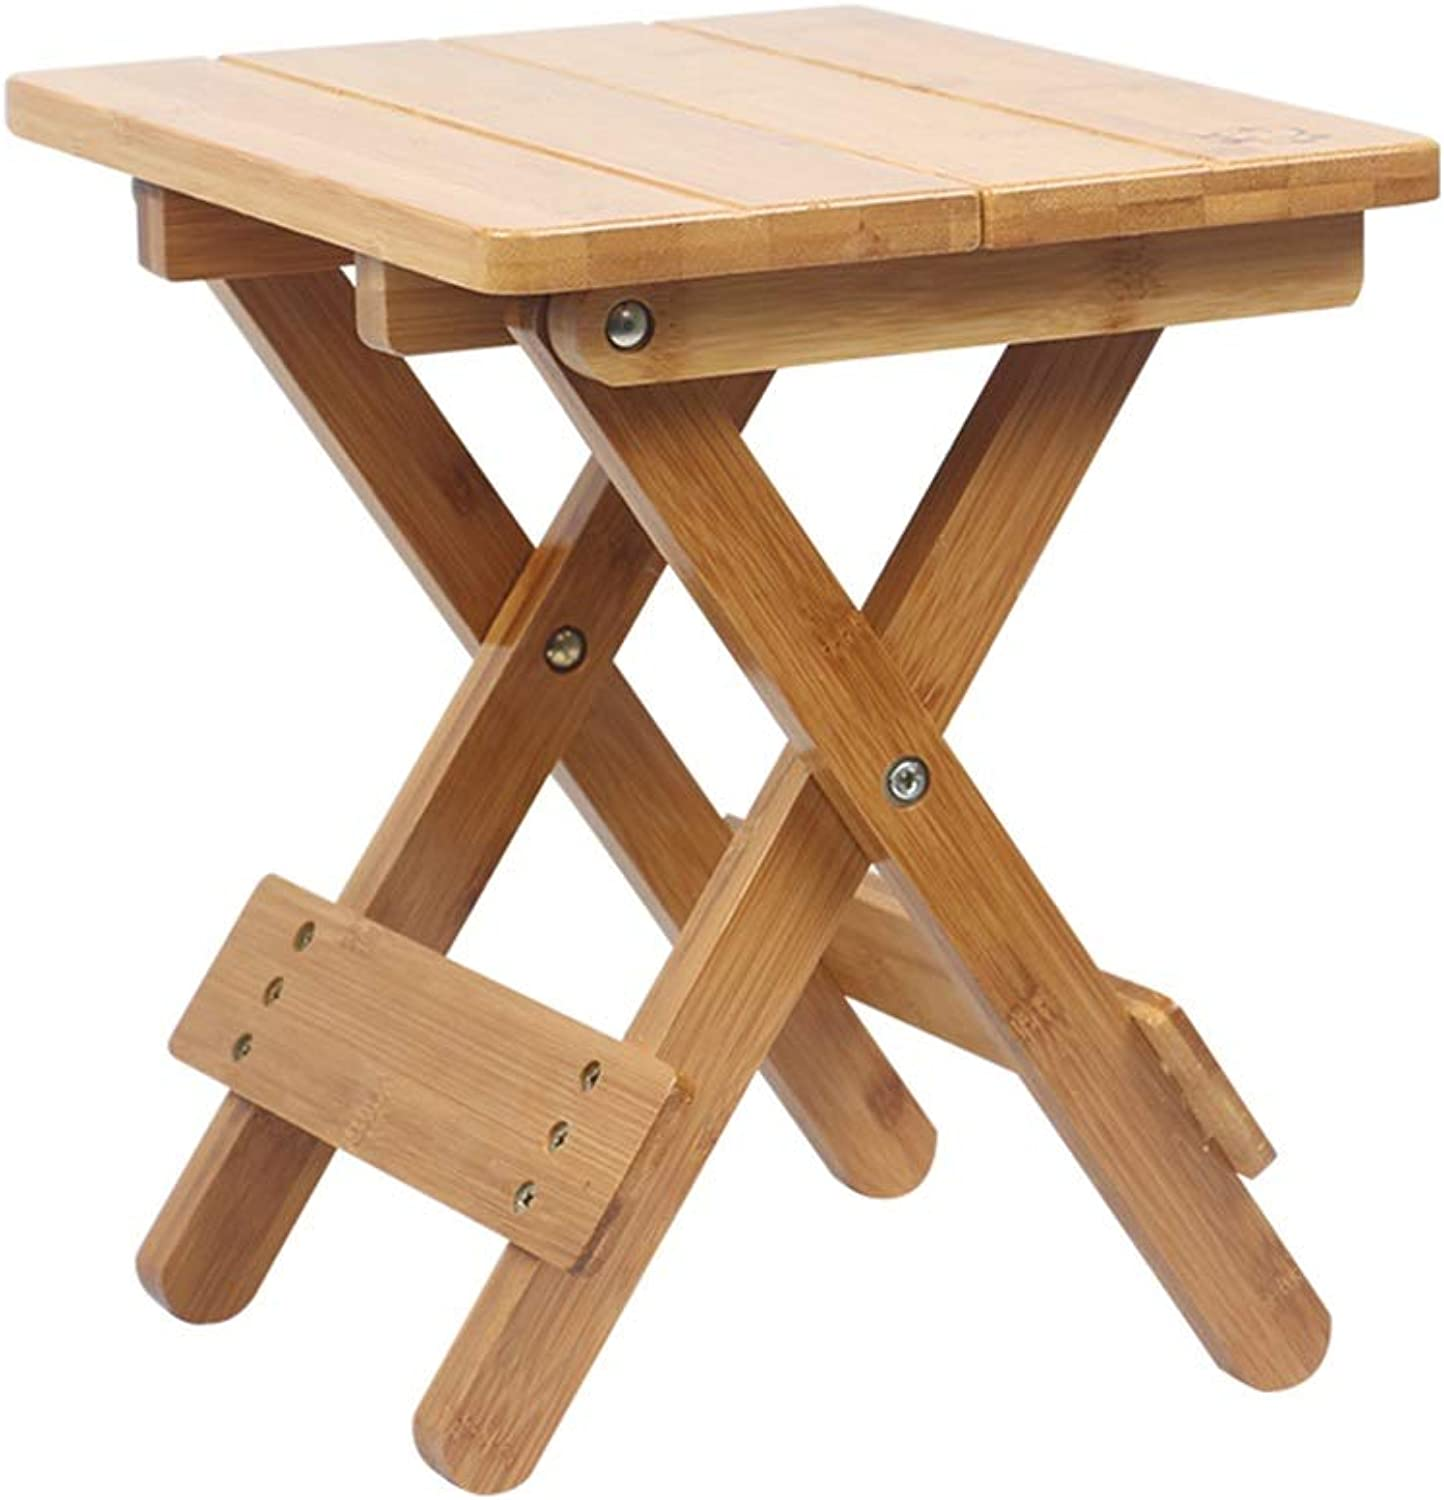 Portable Folding Camping Stool Heavy Duty Fold-in-Half Solid Wood Outdoor Fishing Chair Bamboo Household Small Square Stool